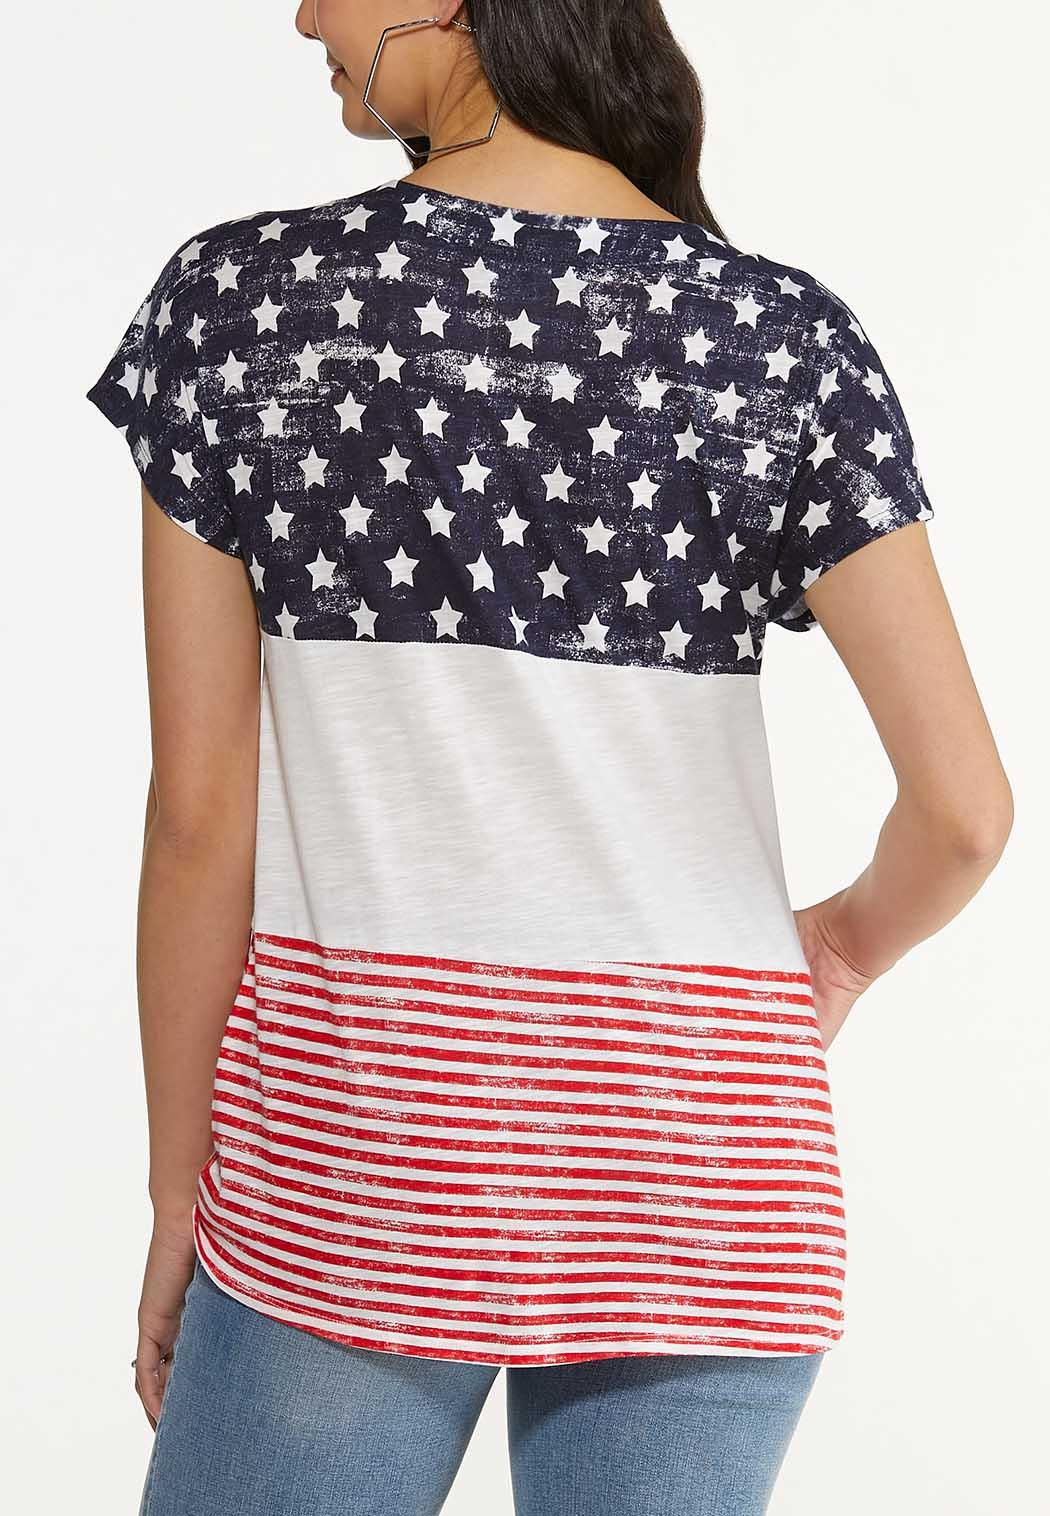 Knotted Stars And Stripes Tee (Item #44597138)